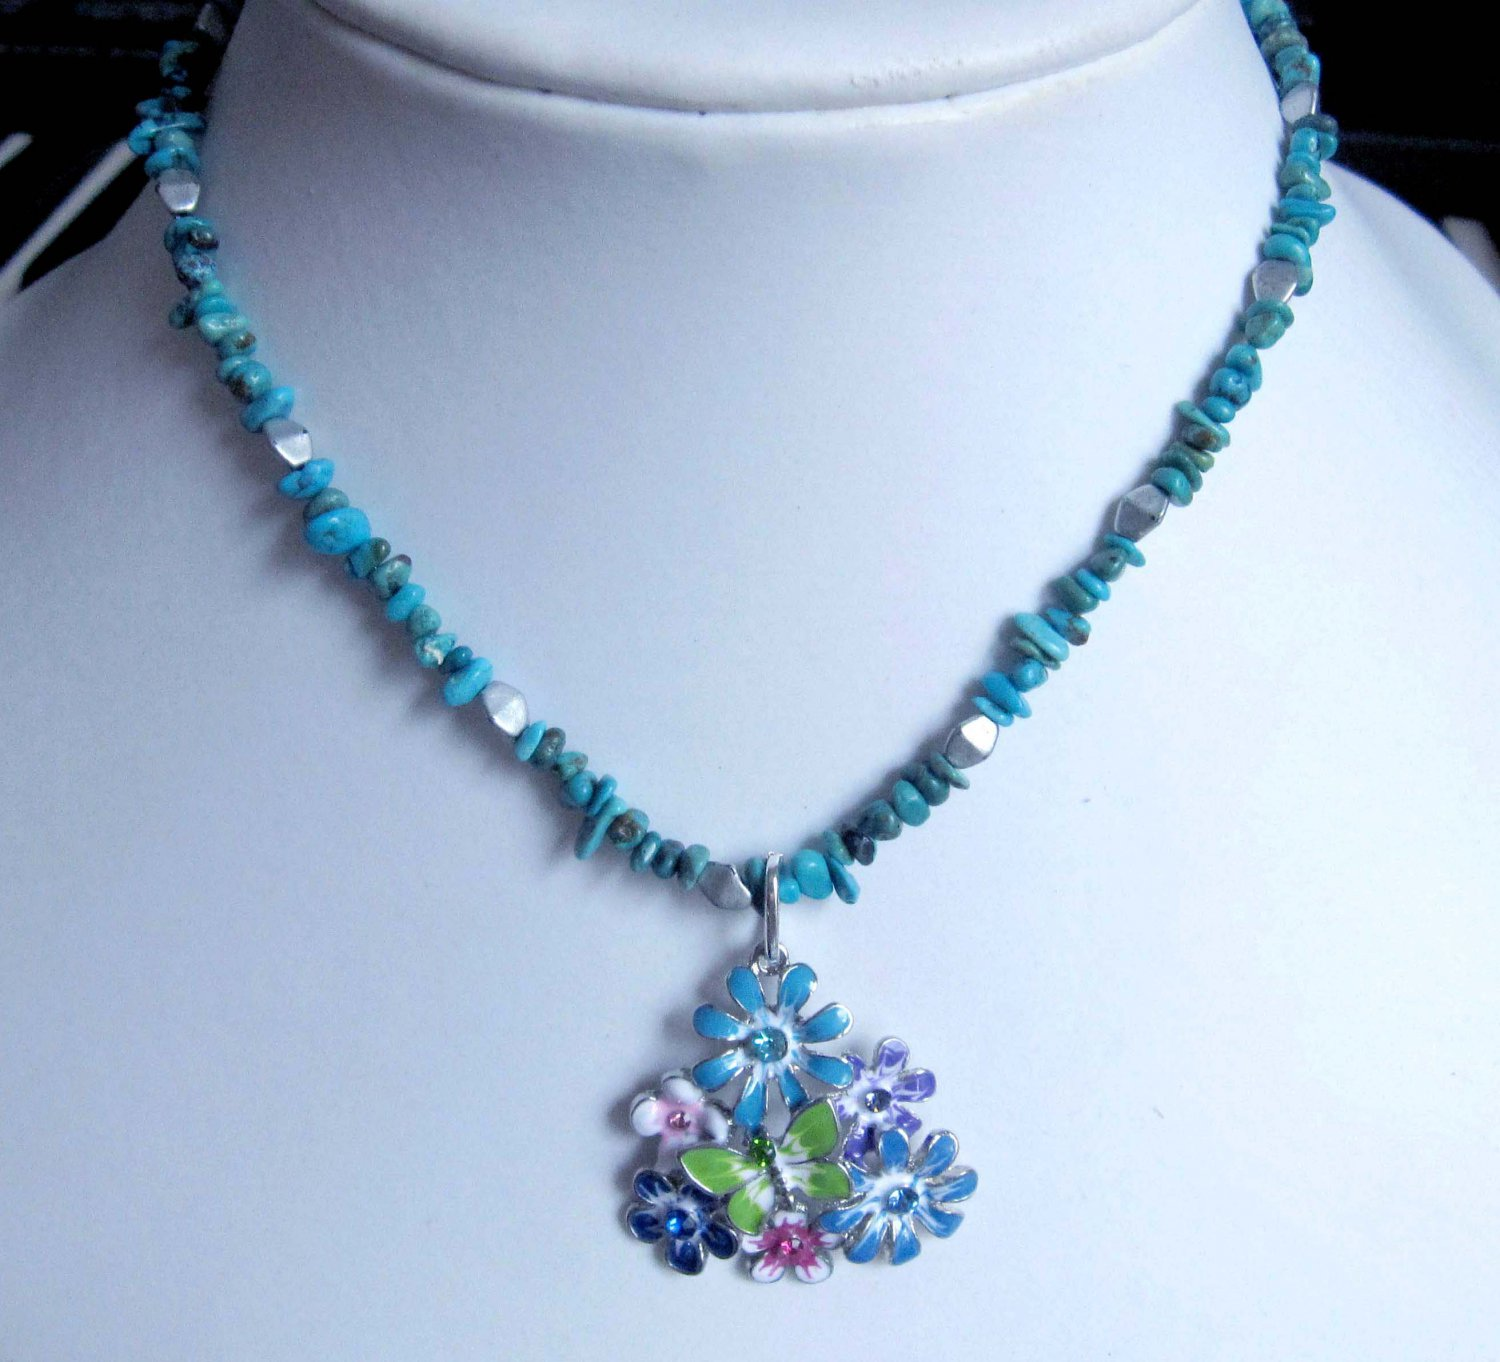 Fashion jewelry designer necklace semiprecious stone turquoise multicolour flower pendant ooak